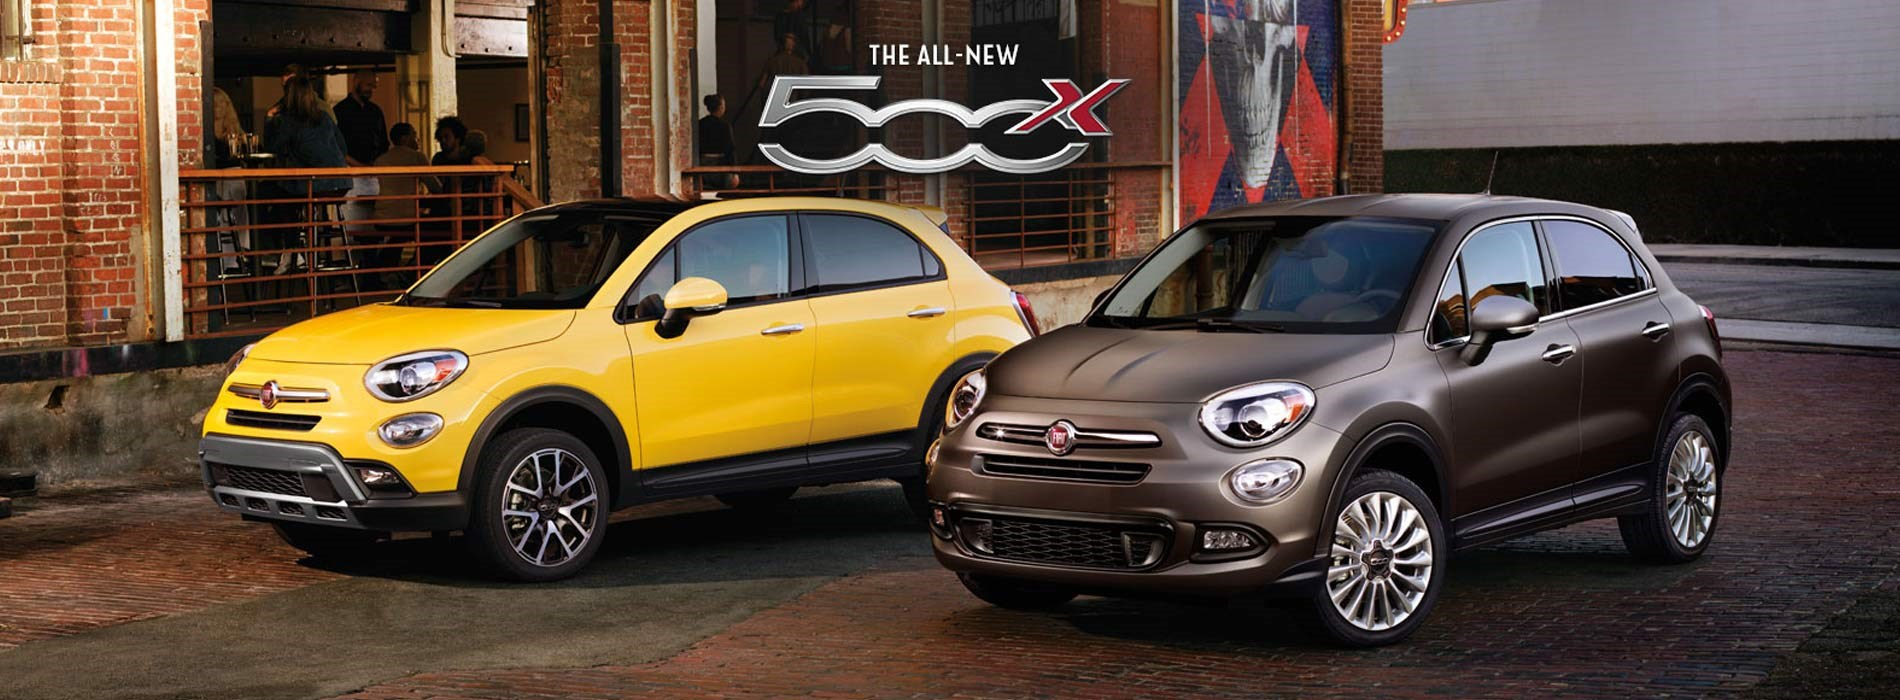 The All-New Fiat 500X